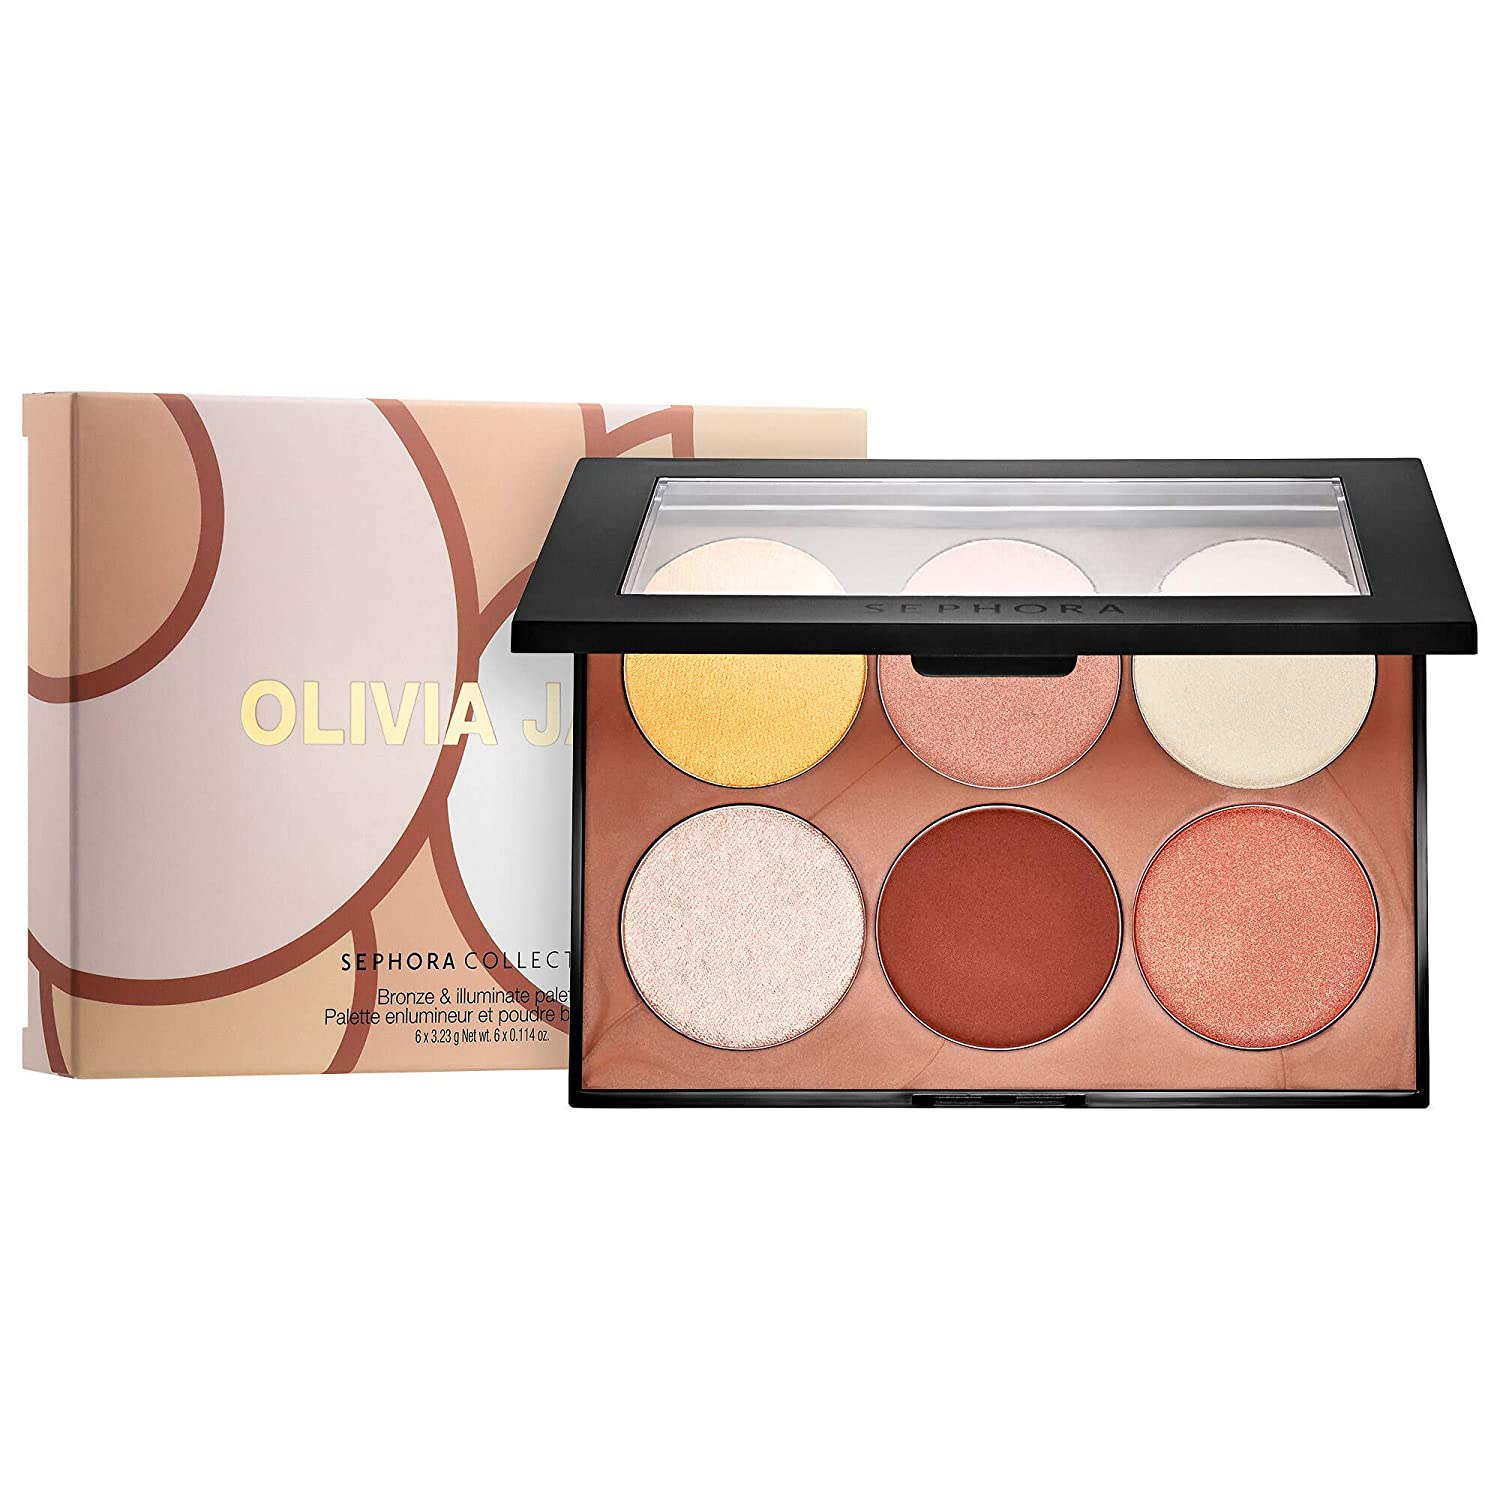 Buy Stockout SEPHORA COLLECTION Olivia Jade x Sephora Collection Bronze &  Illuminate Palette Online at Low Prices in India - Amazon.in